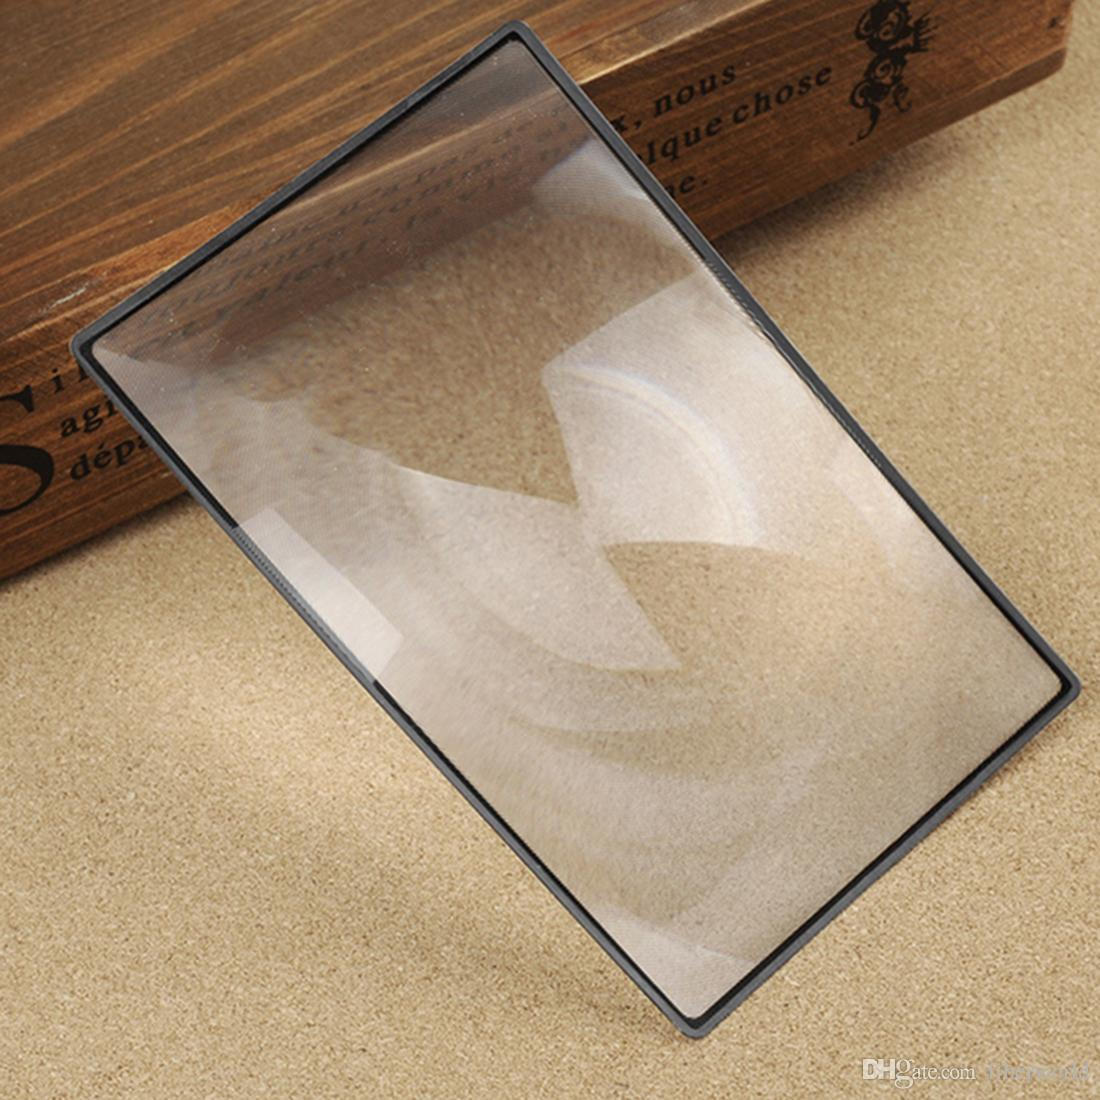 180X120mm Convinient A5 Flat PVC Magnifier Sheet X3 Book Page Magnification Magnifying Reading Glass Lens